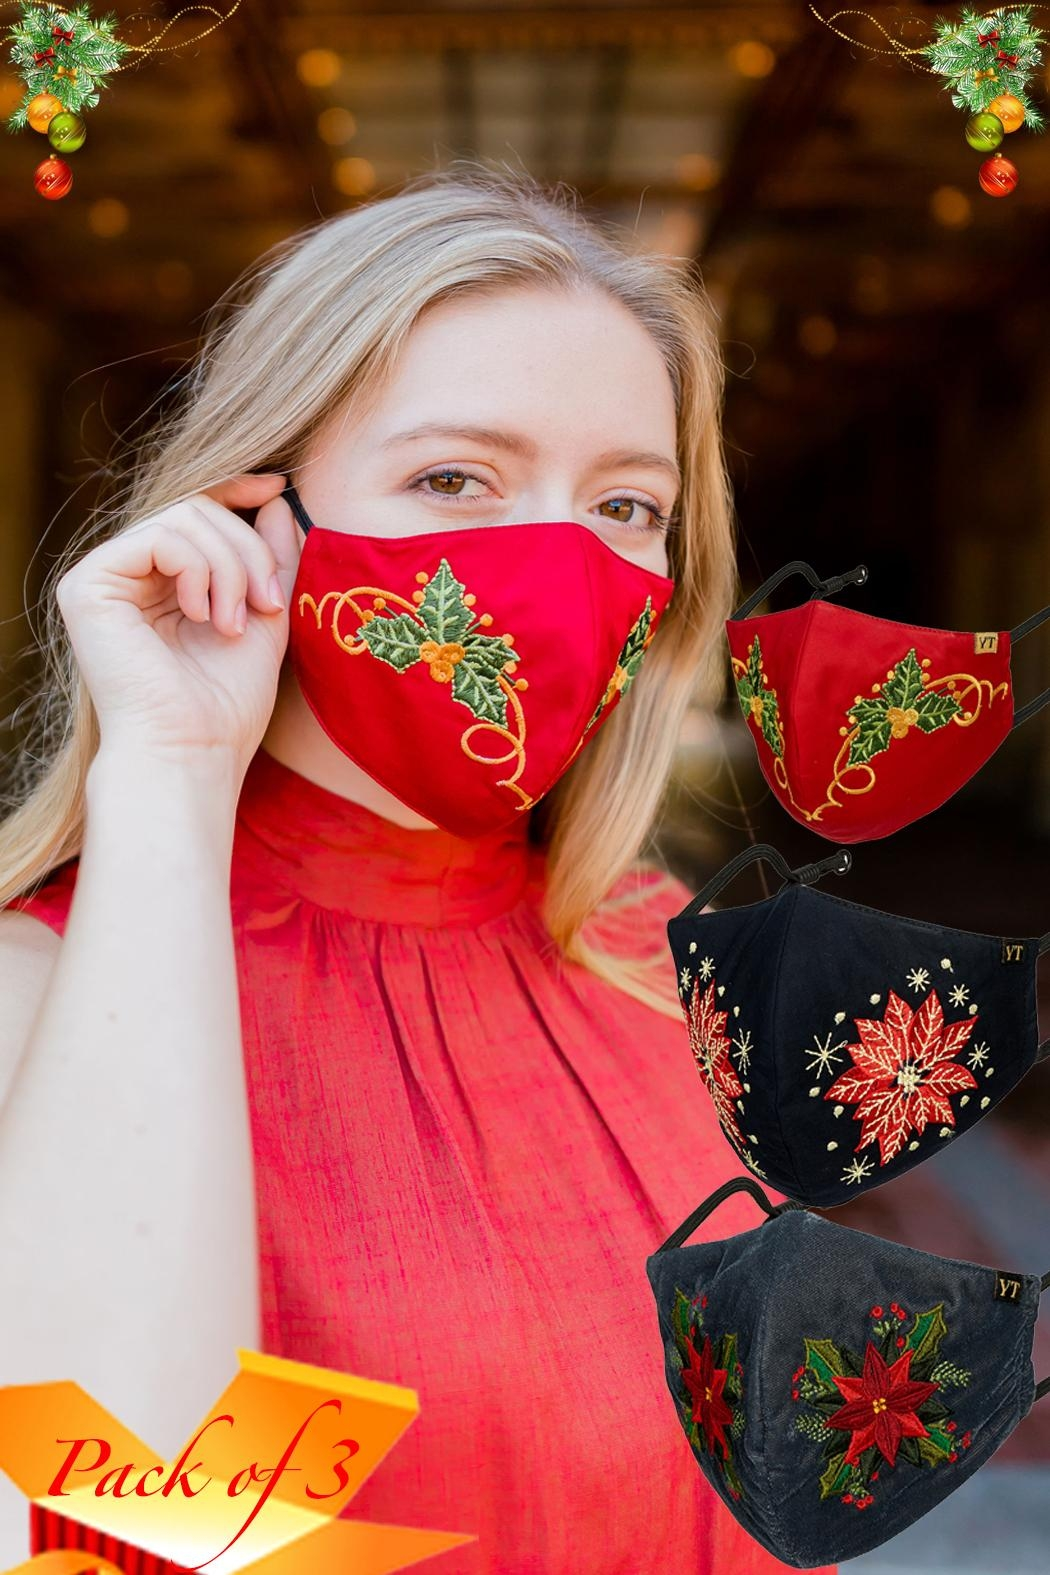 Young Threads Best Seller Holiday Emb Mask, Embroidered Mask, Cotton Lining, Handcrafted Mask, 3layered Face Mask, Nose Pin, Ear Loops- Pack Of 3 - Main Image